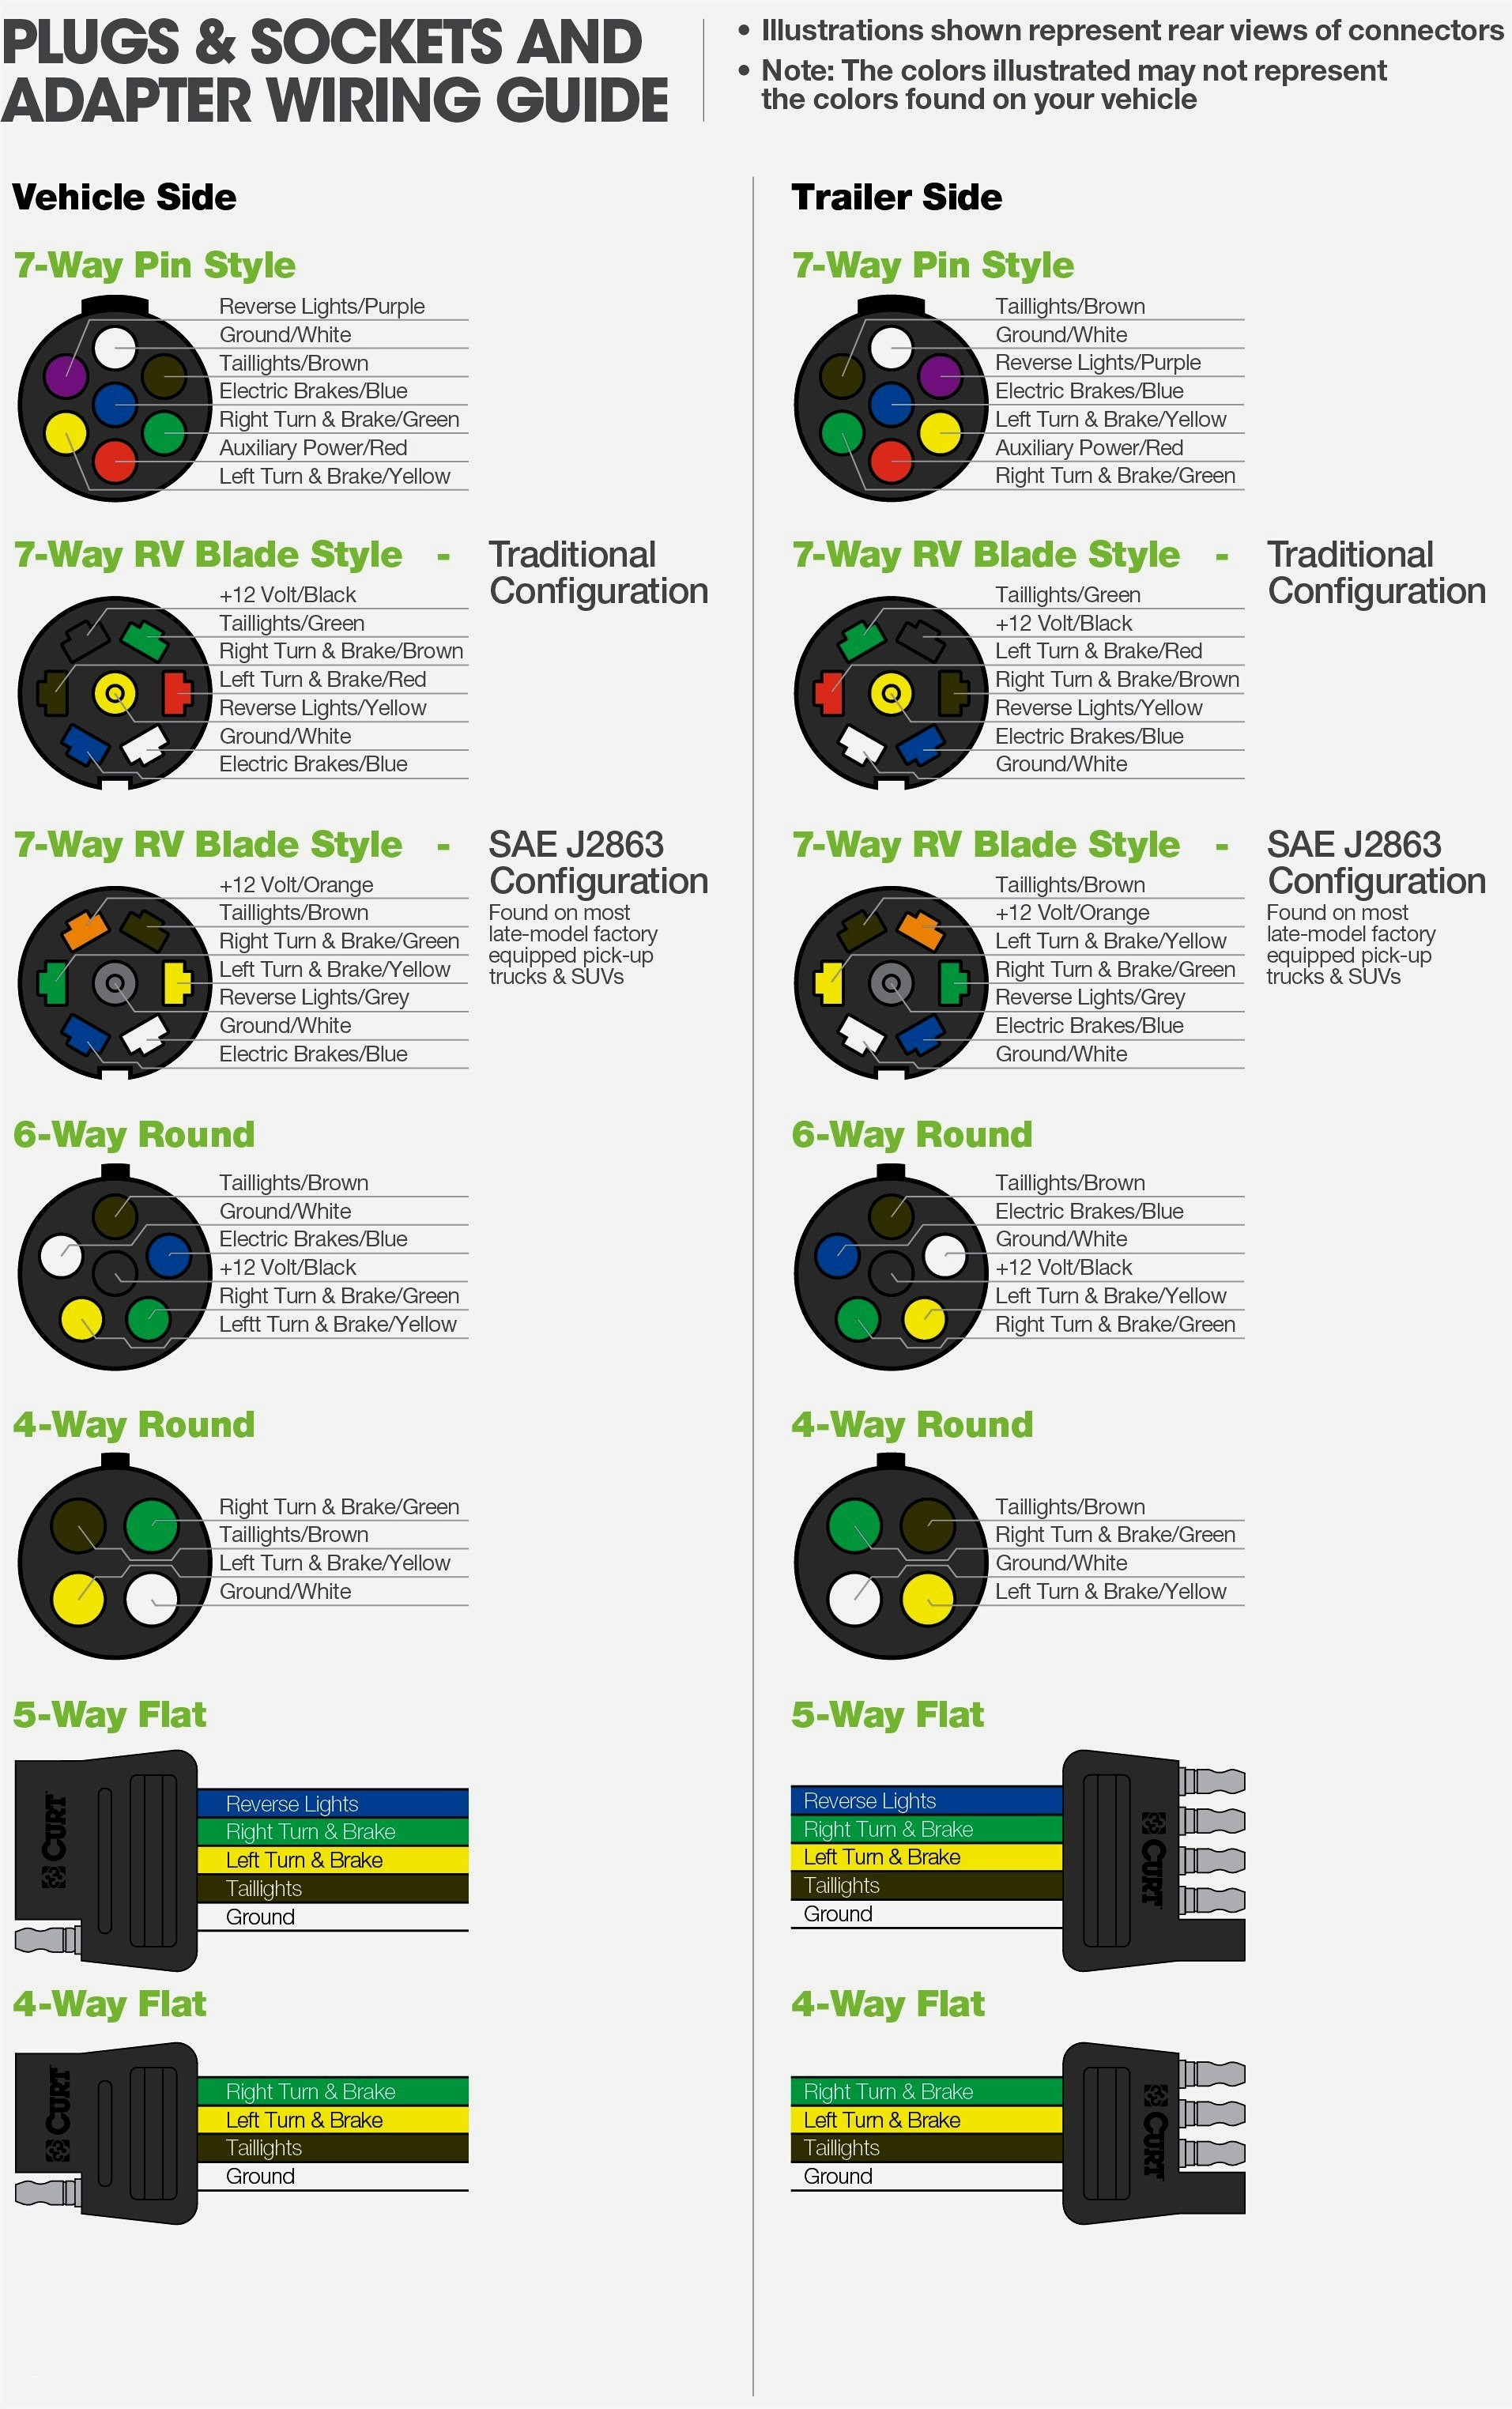 6 Way Trailer Wiring Harness Diagram from static-cdn.imageservice.cloud